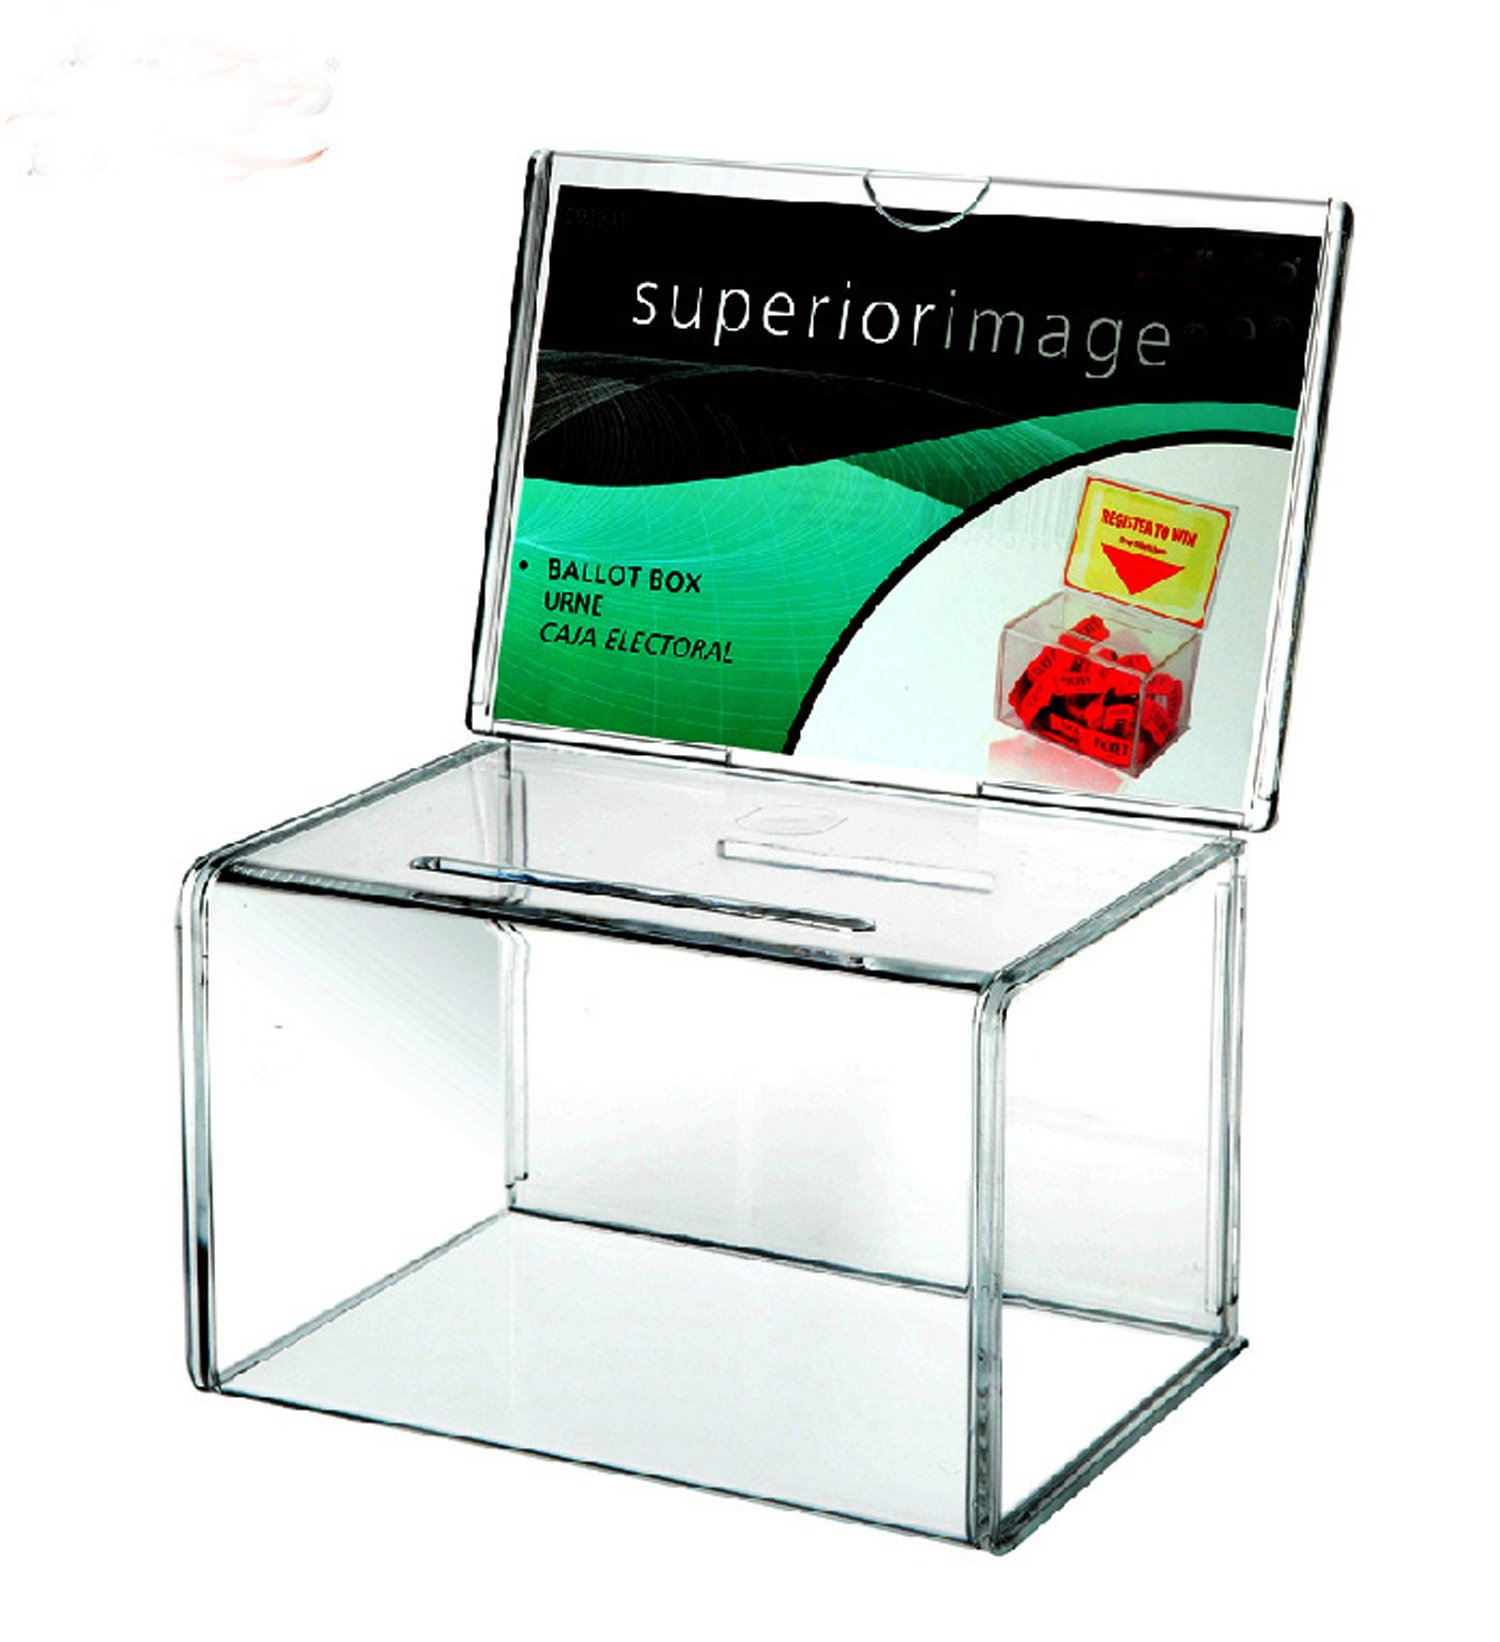 Countertop Acrylic Entry Boxes Without Keylock for Raffle,Ballot,Comments and Suggestion